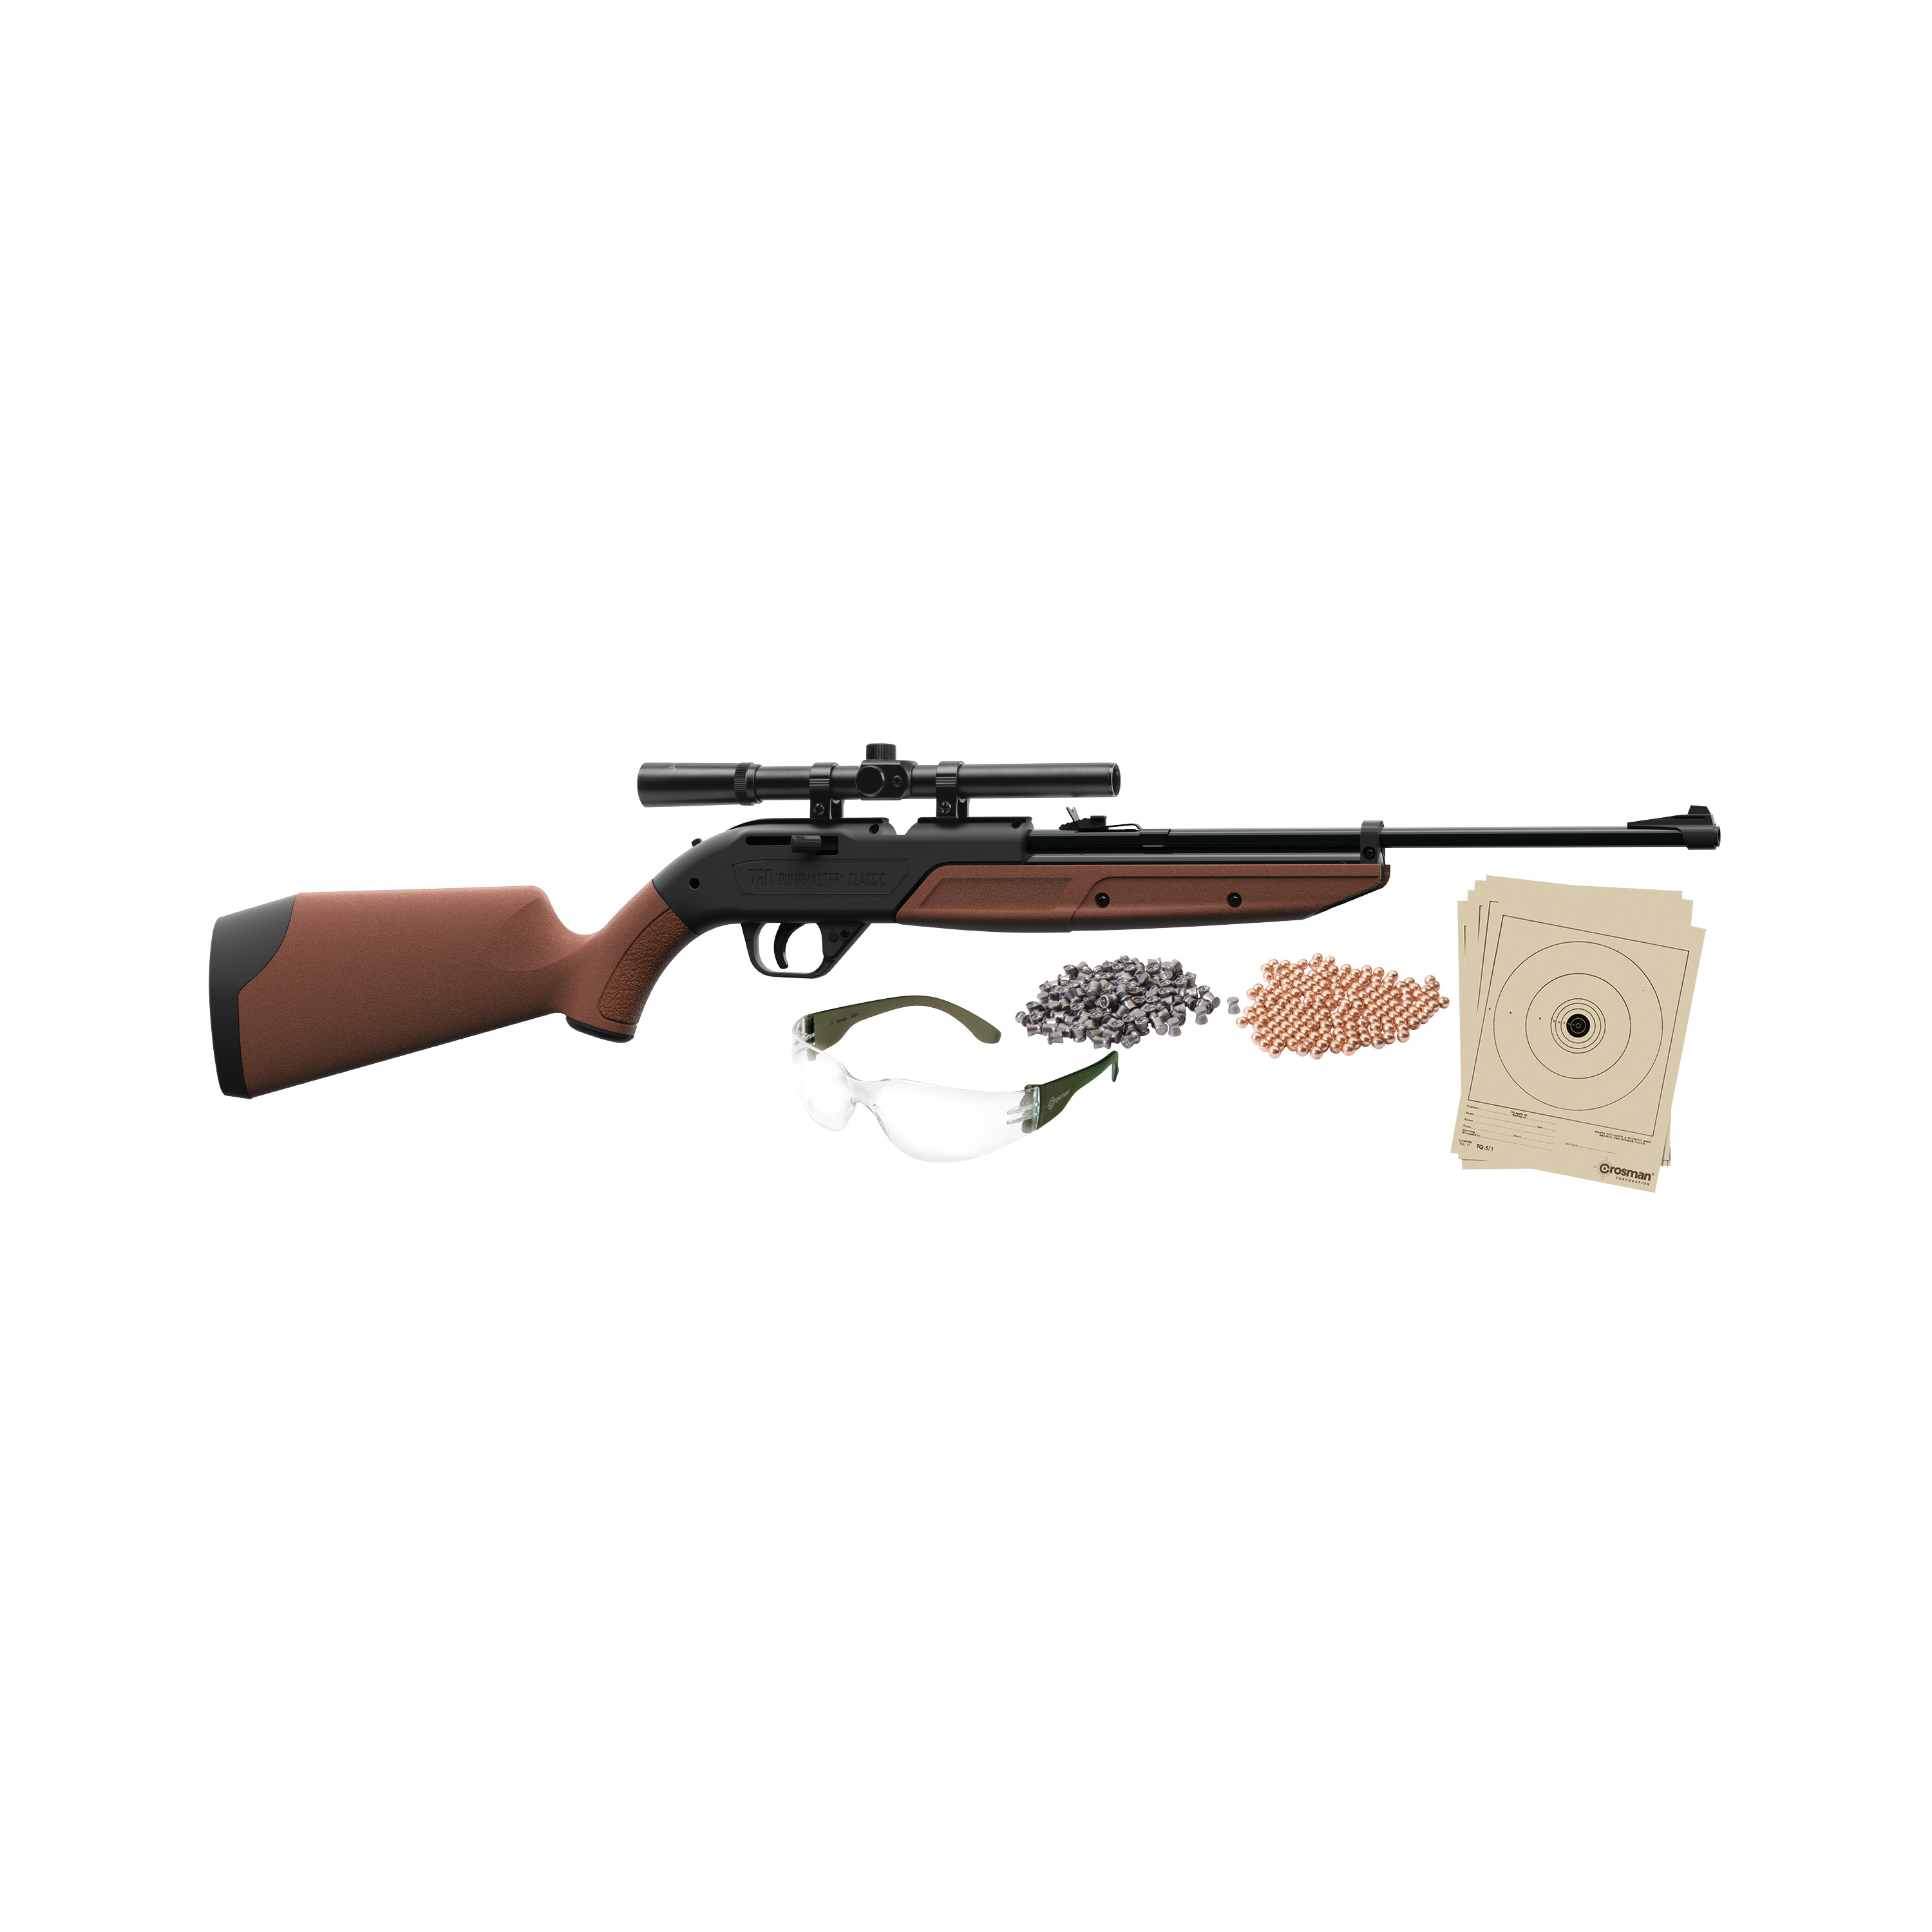 Crosman 760 Pumpmaster .177 Caliber Air Rifle with Scope, Ammo, glasses and targets, 760BKT